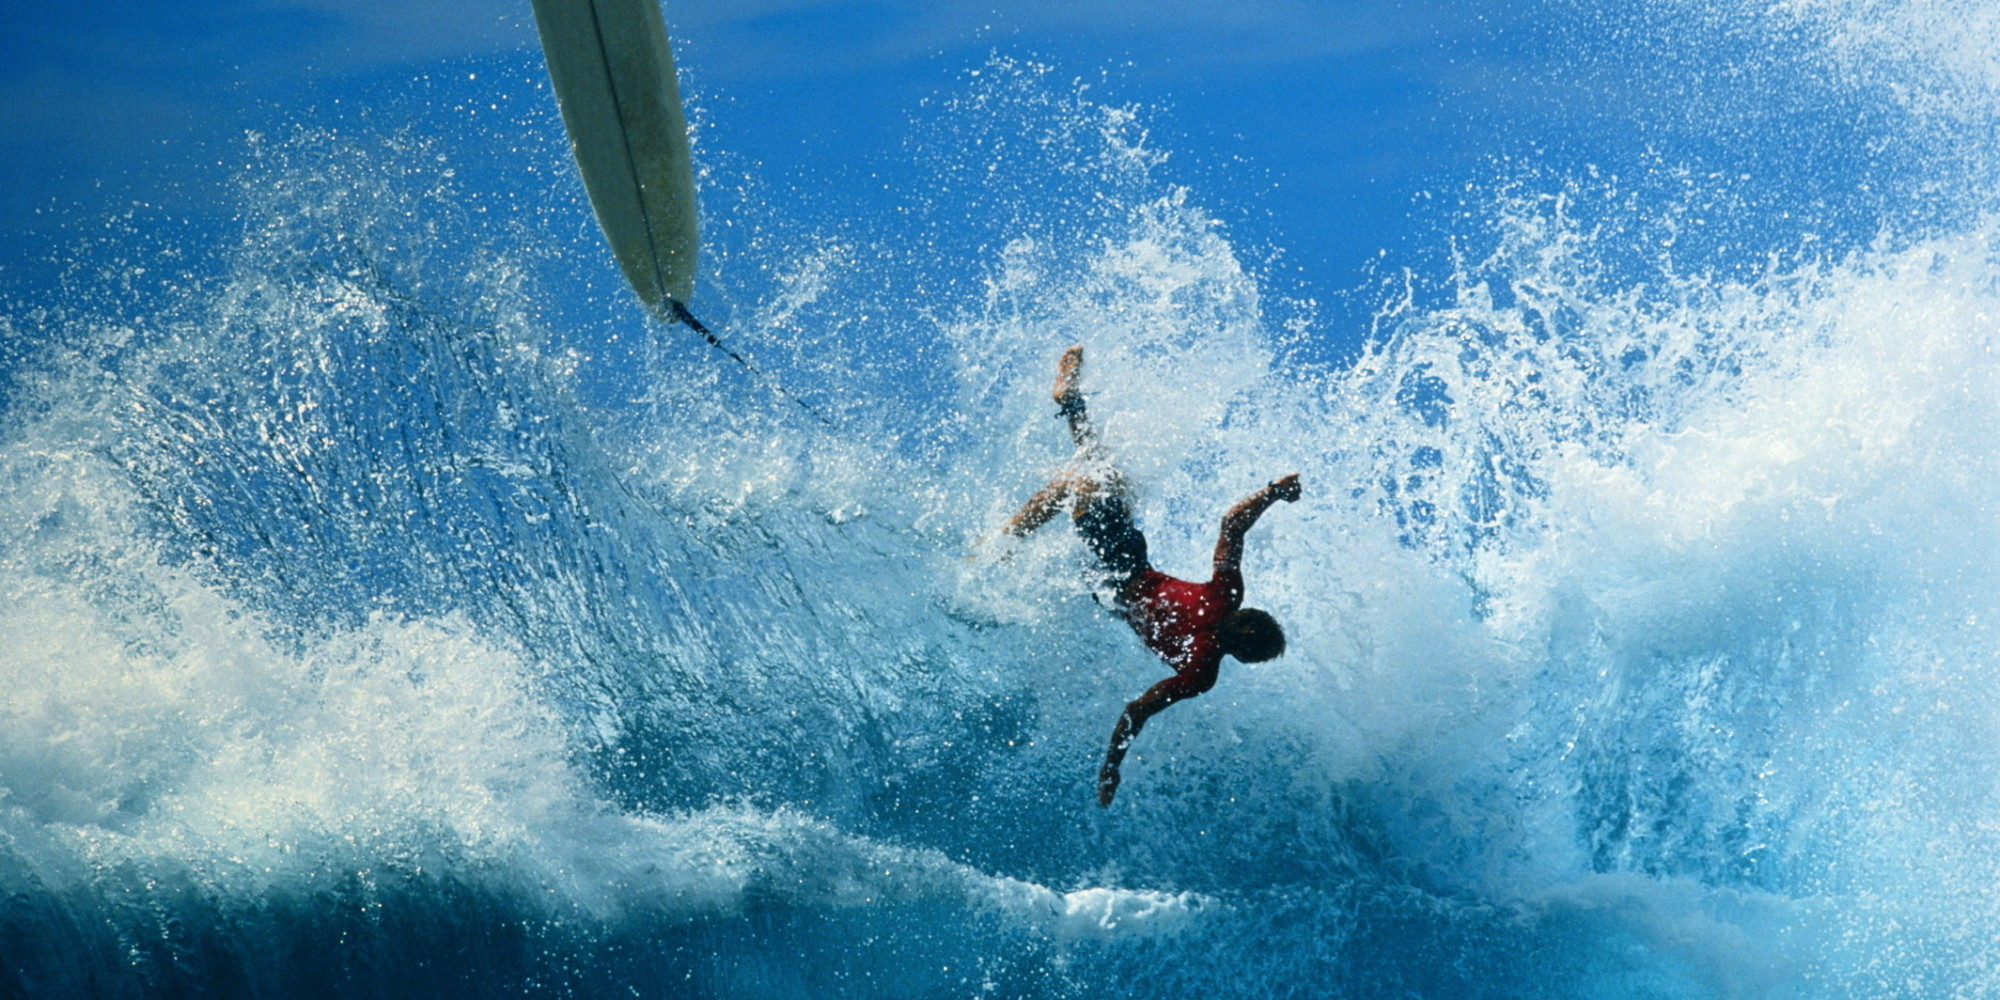 o-SURFER-WIPEOUT-facebook.jpg